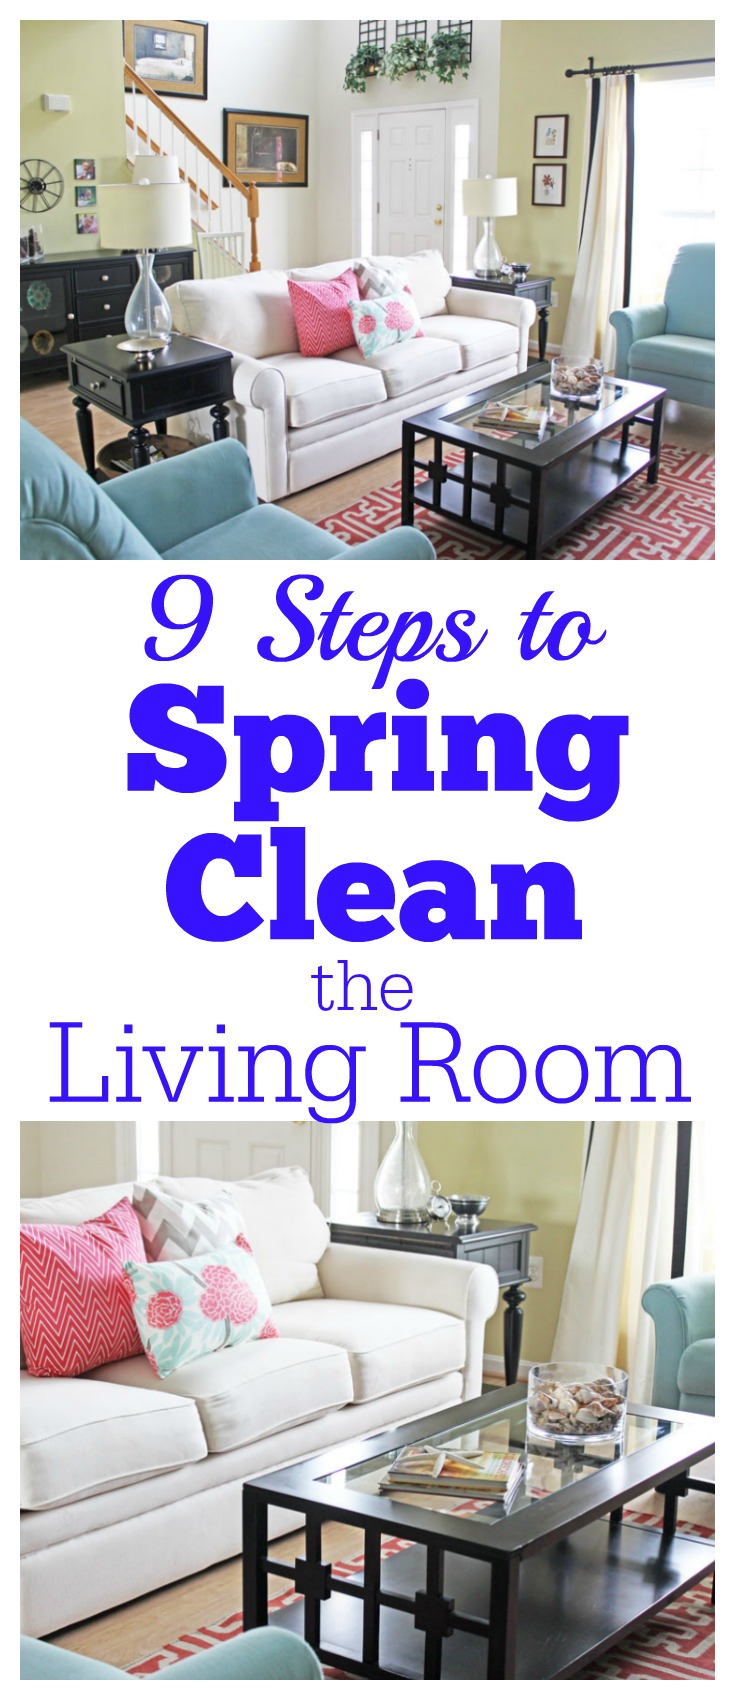 clean living room connected to kitchen paint ideas 9 steps spring the saving cent by cleaning